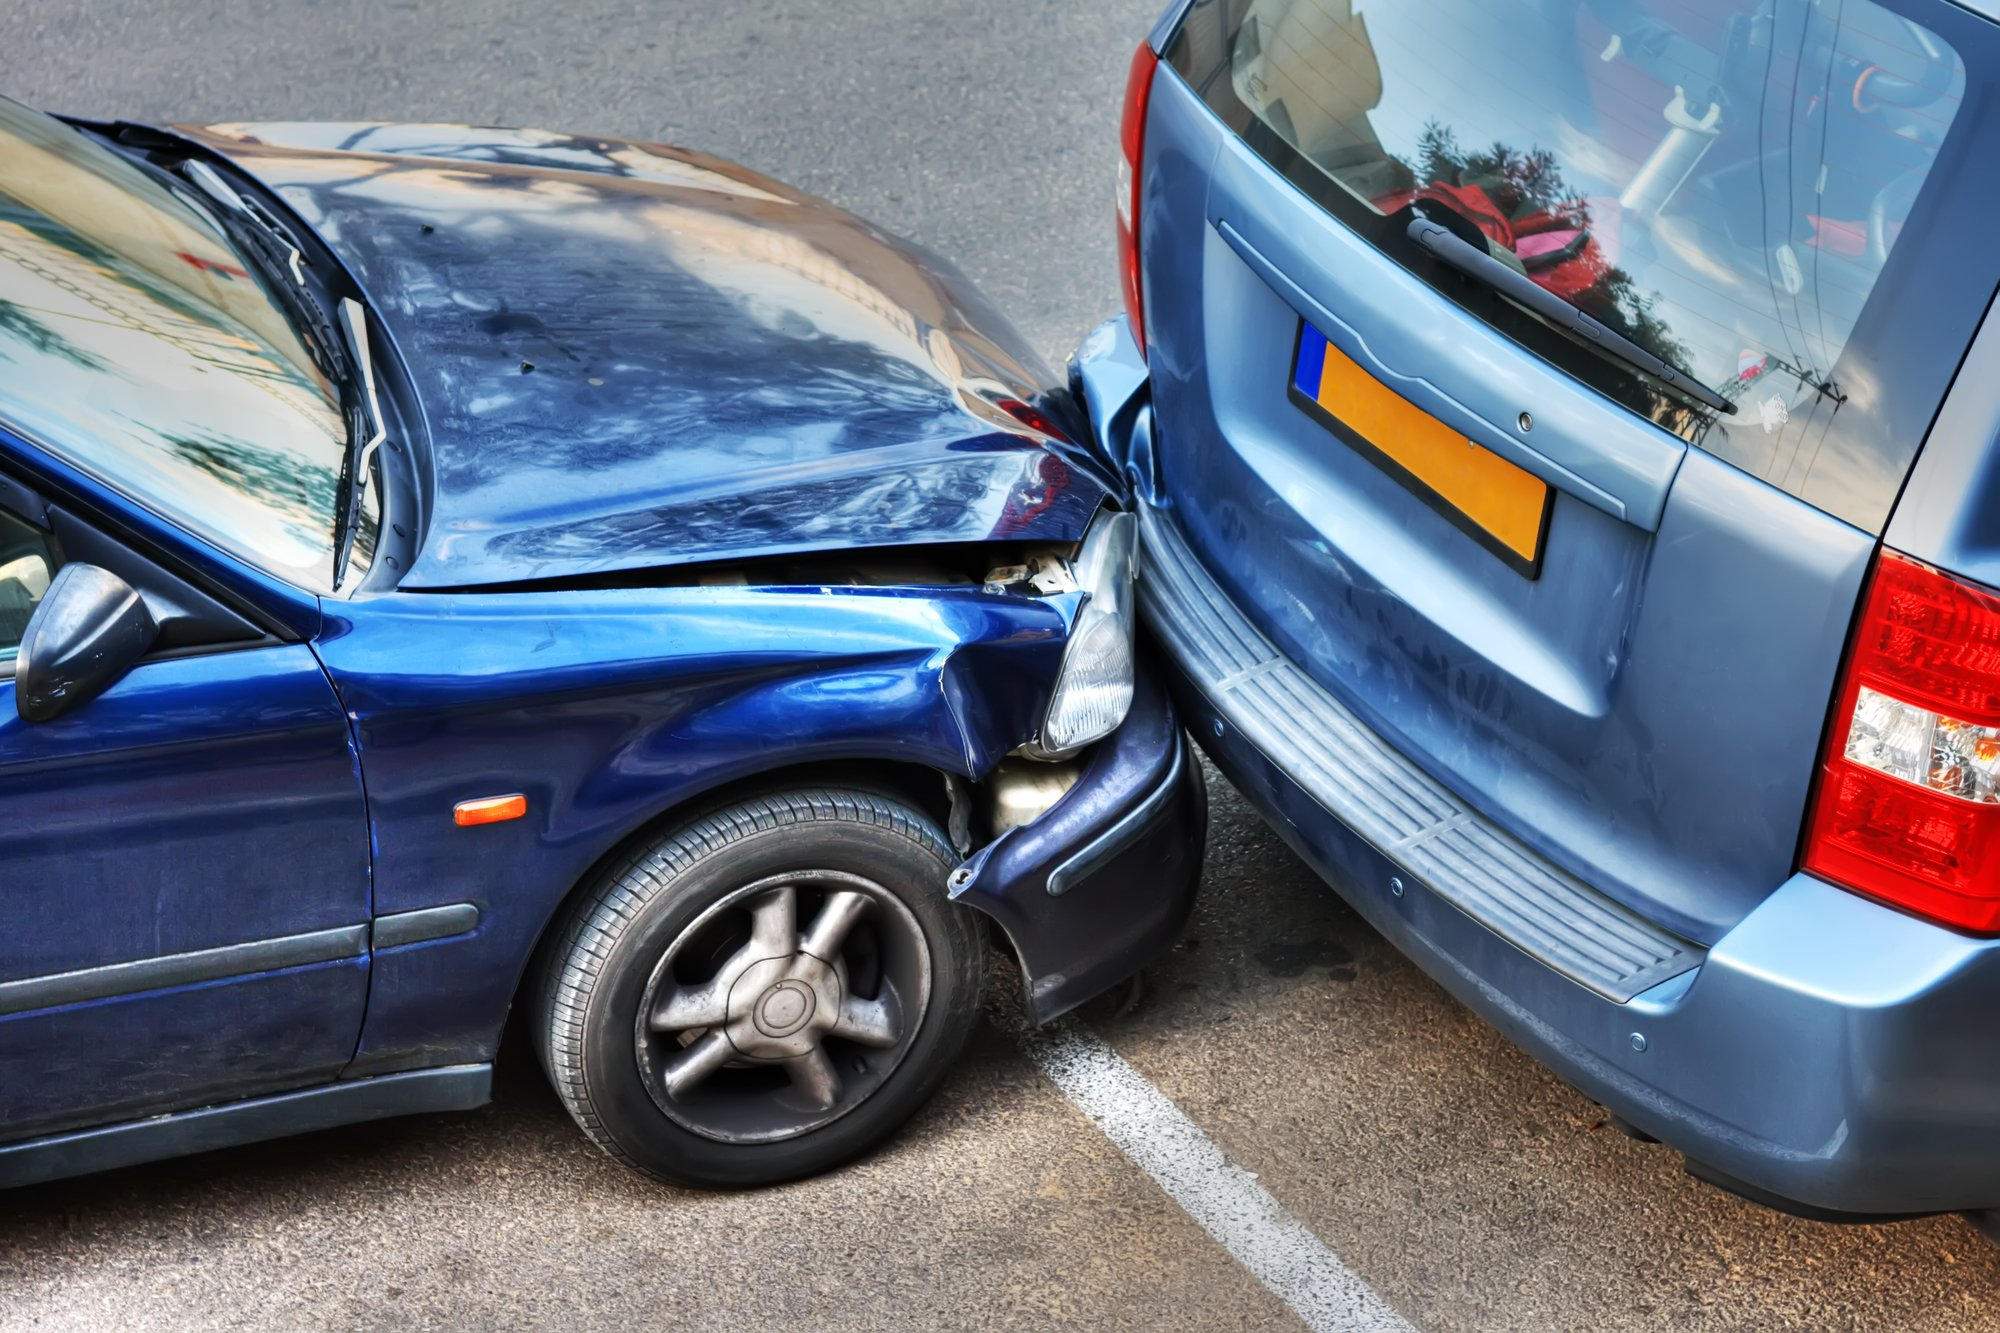 Things You Wished You Knew Before Getting into a Car Accident